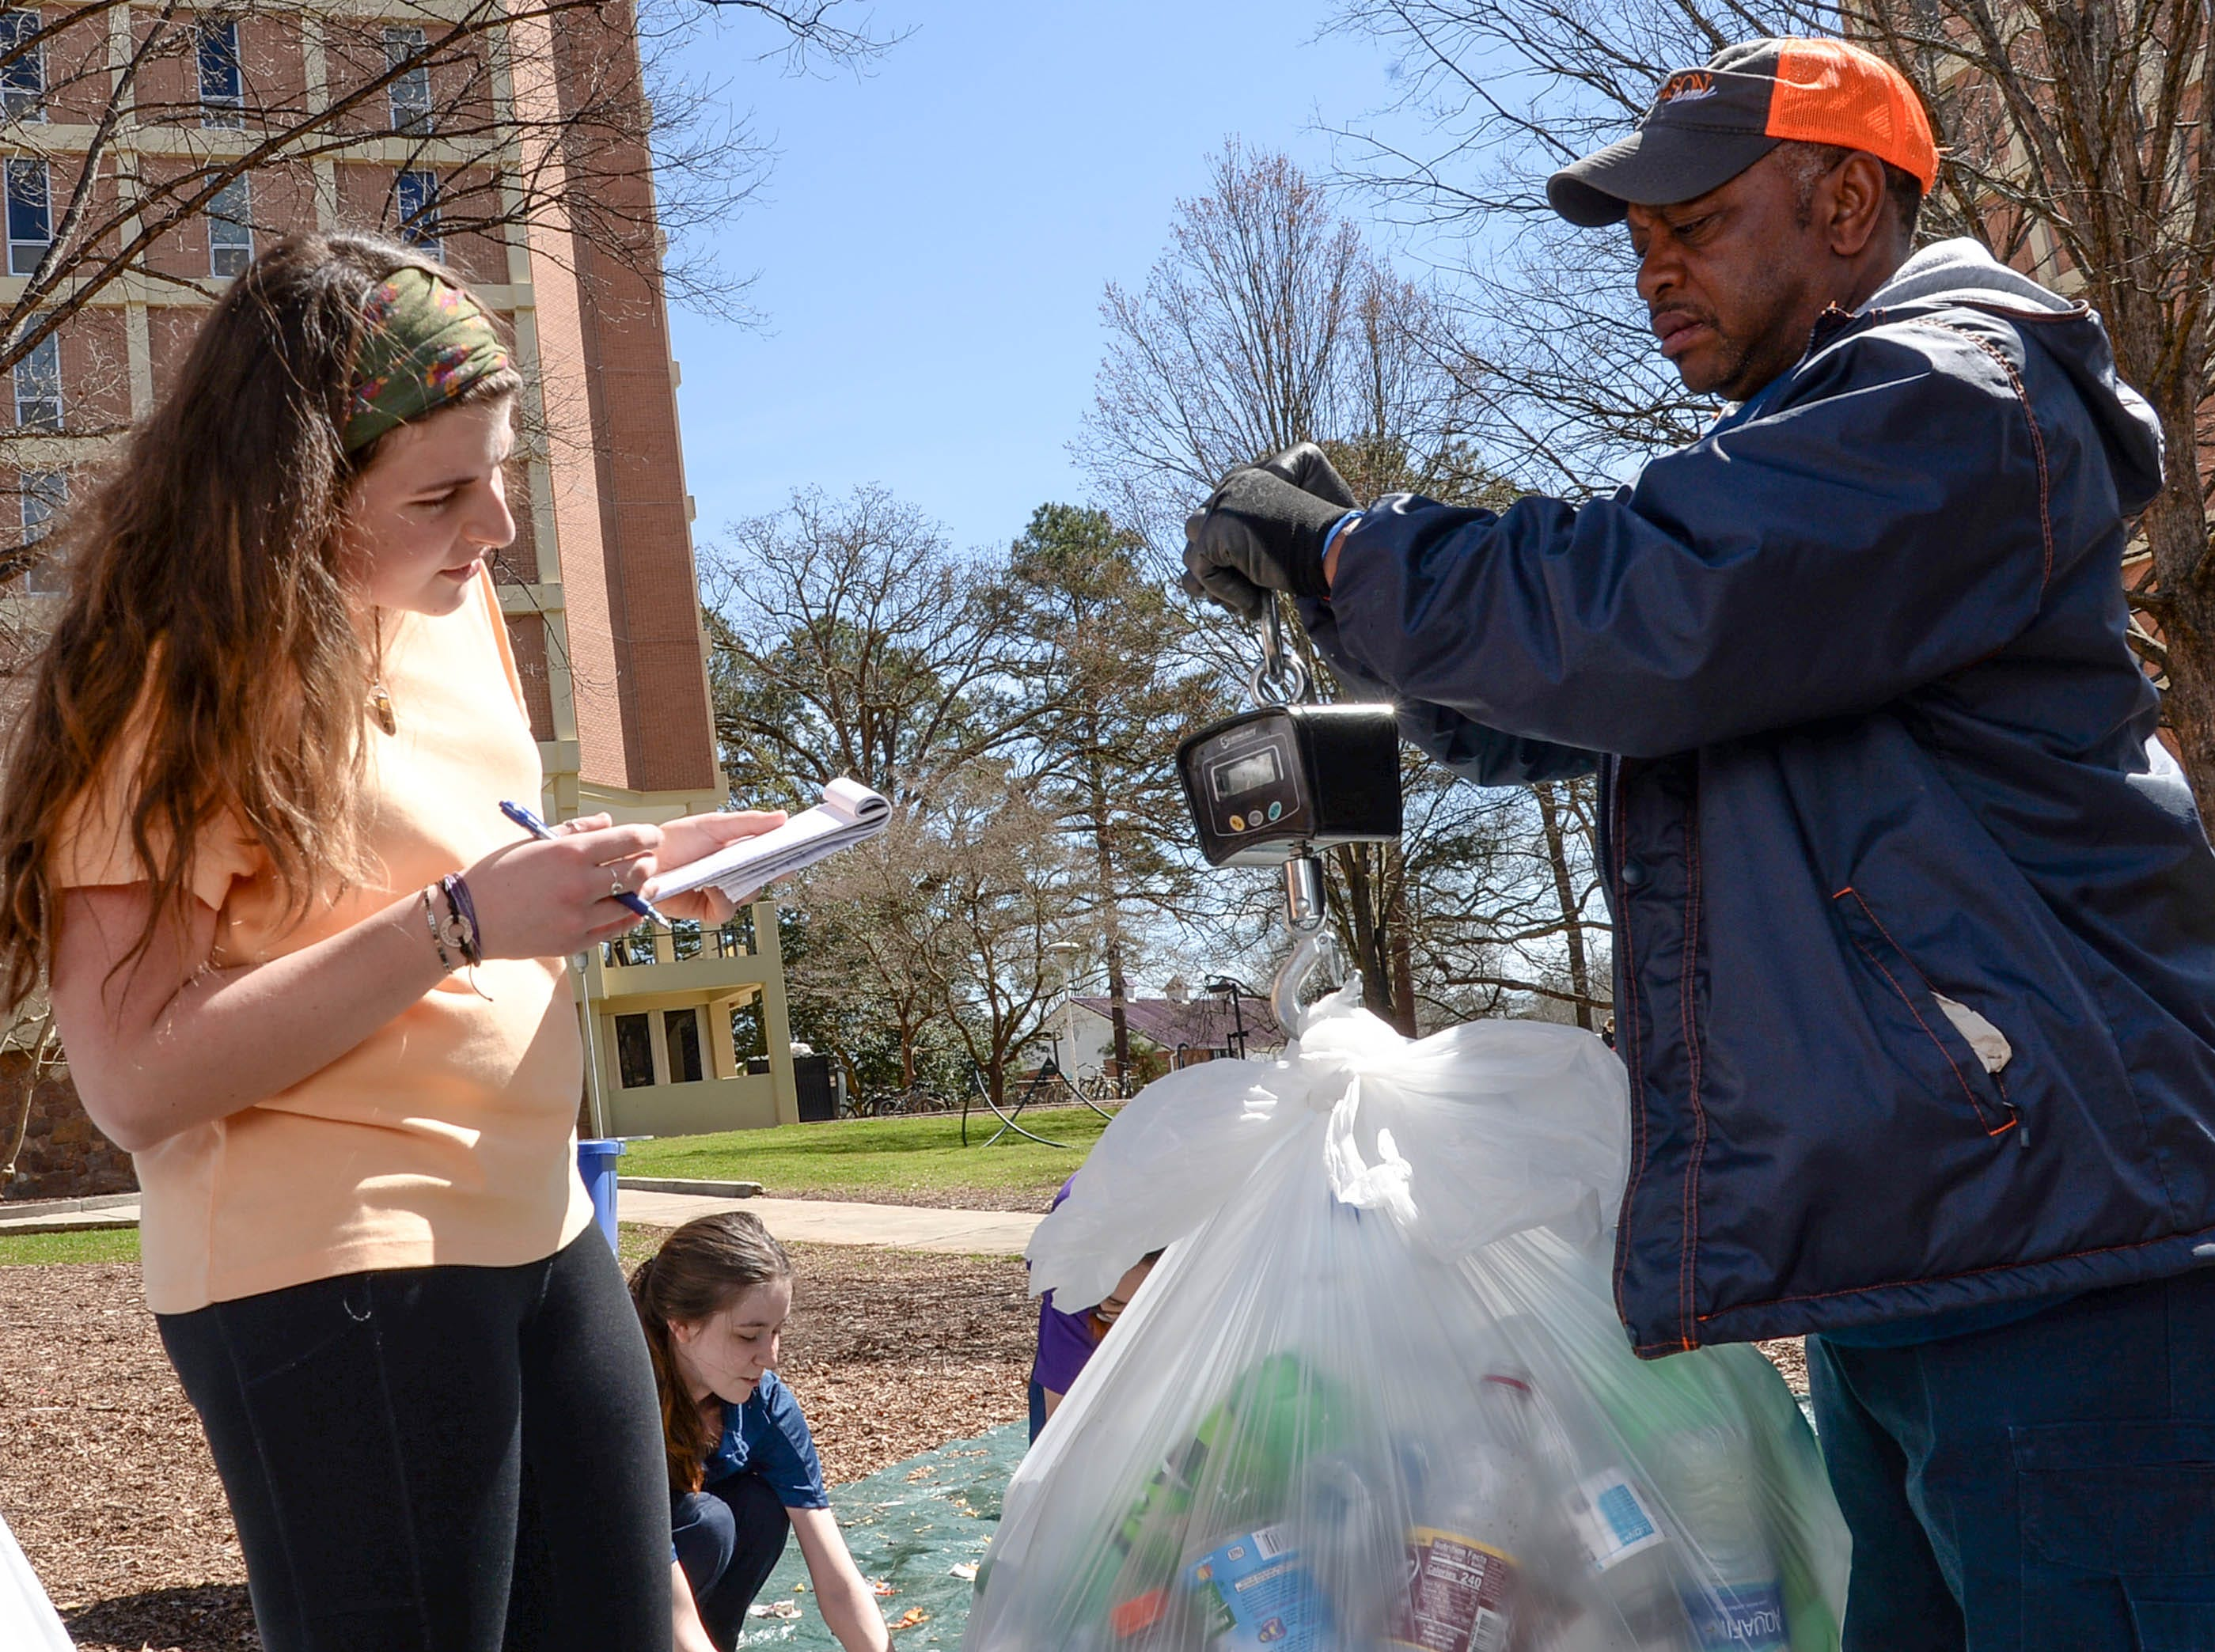 Clemson University student Olivia McQuarrie, left, writes down the weight of plastic in a bag held by facilities department employee Roy Wilson during a study of student recycle habits March 12. The waste audit, part of the annual RecycleMania competition with Universities across the country found from a sample study that Clemson students who recycle plastic and cans are good at doing so, said Morra, leading the study on the lawn outside Manning and Byrnes Hall tower dormitories.